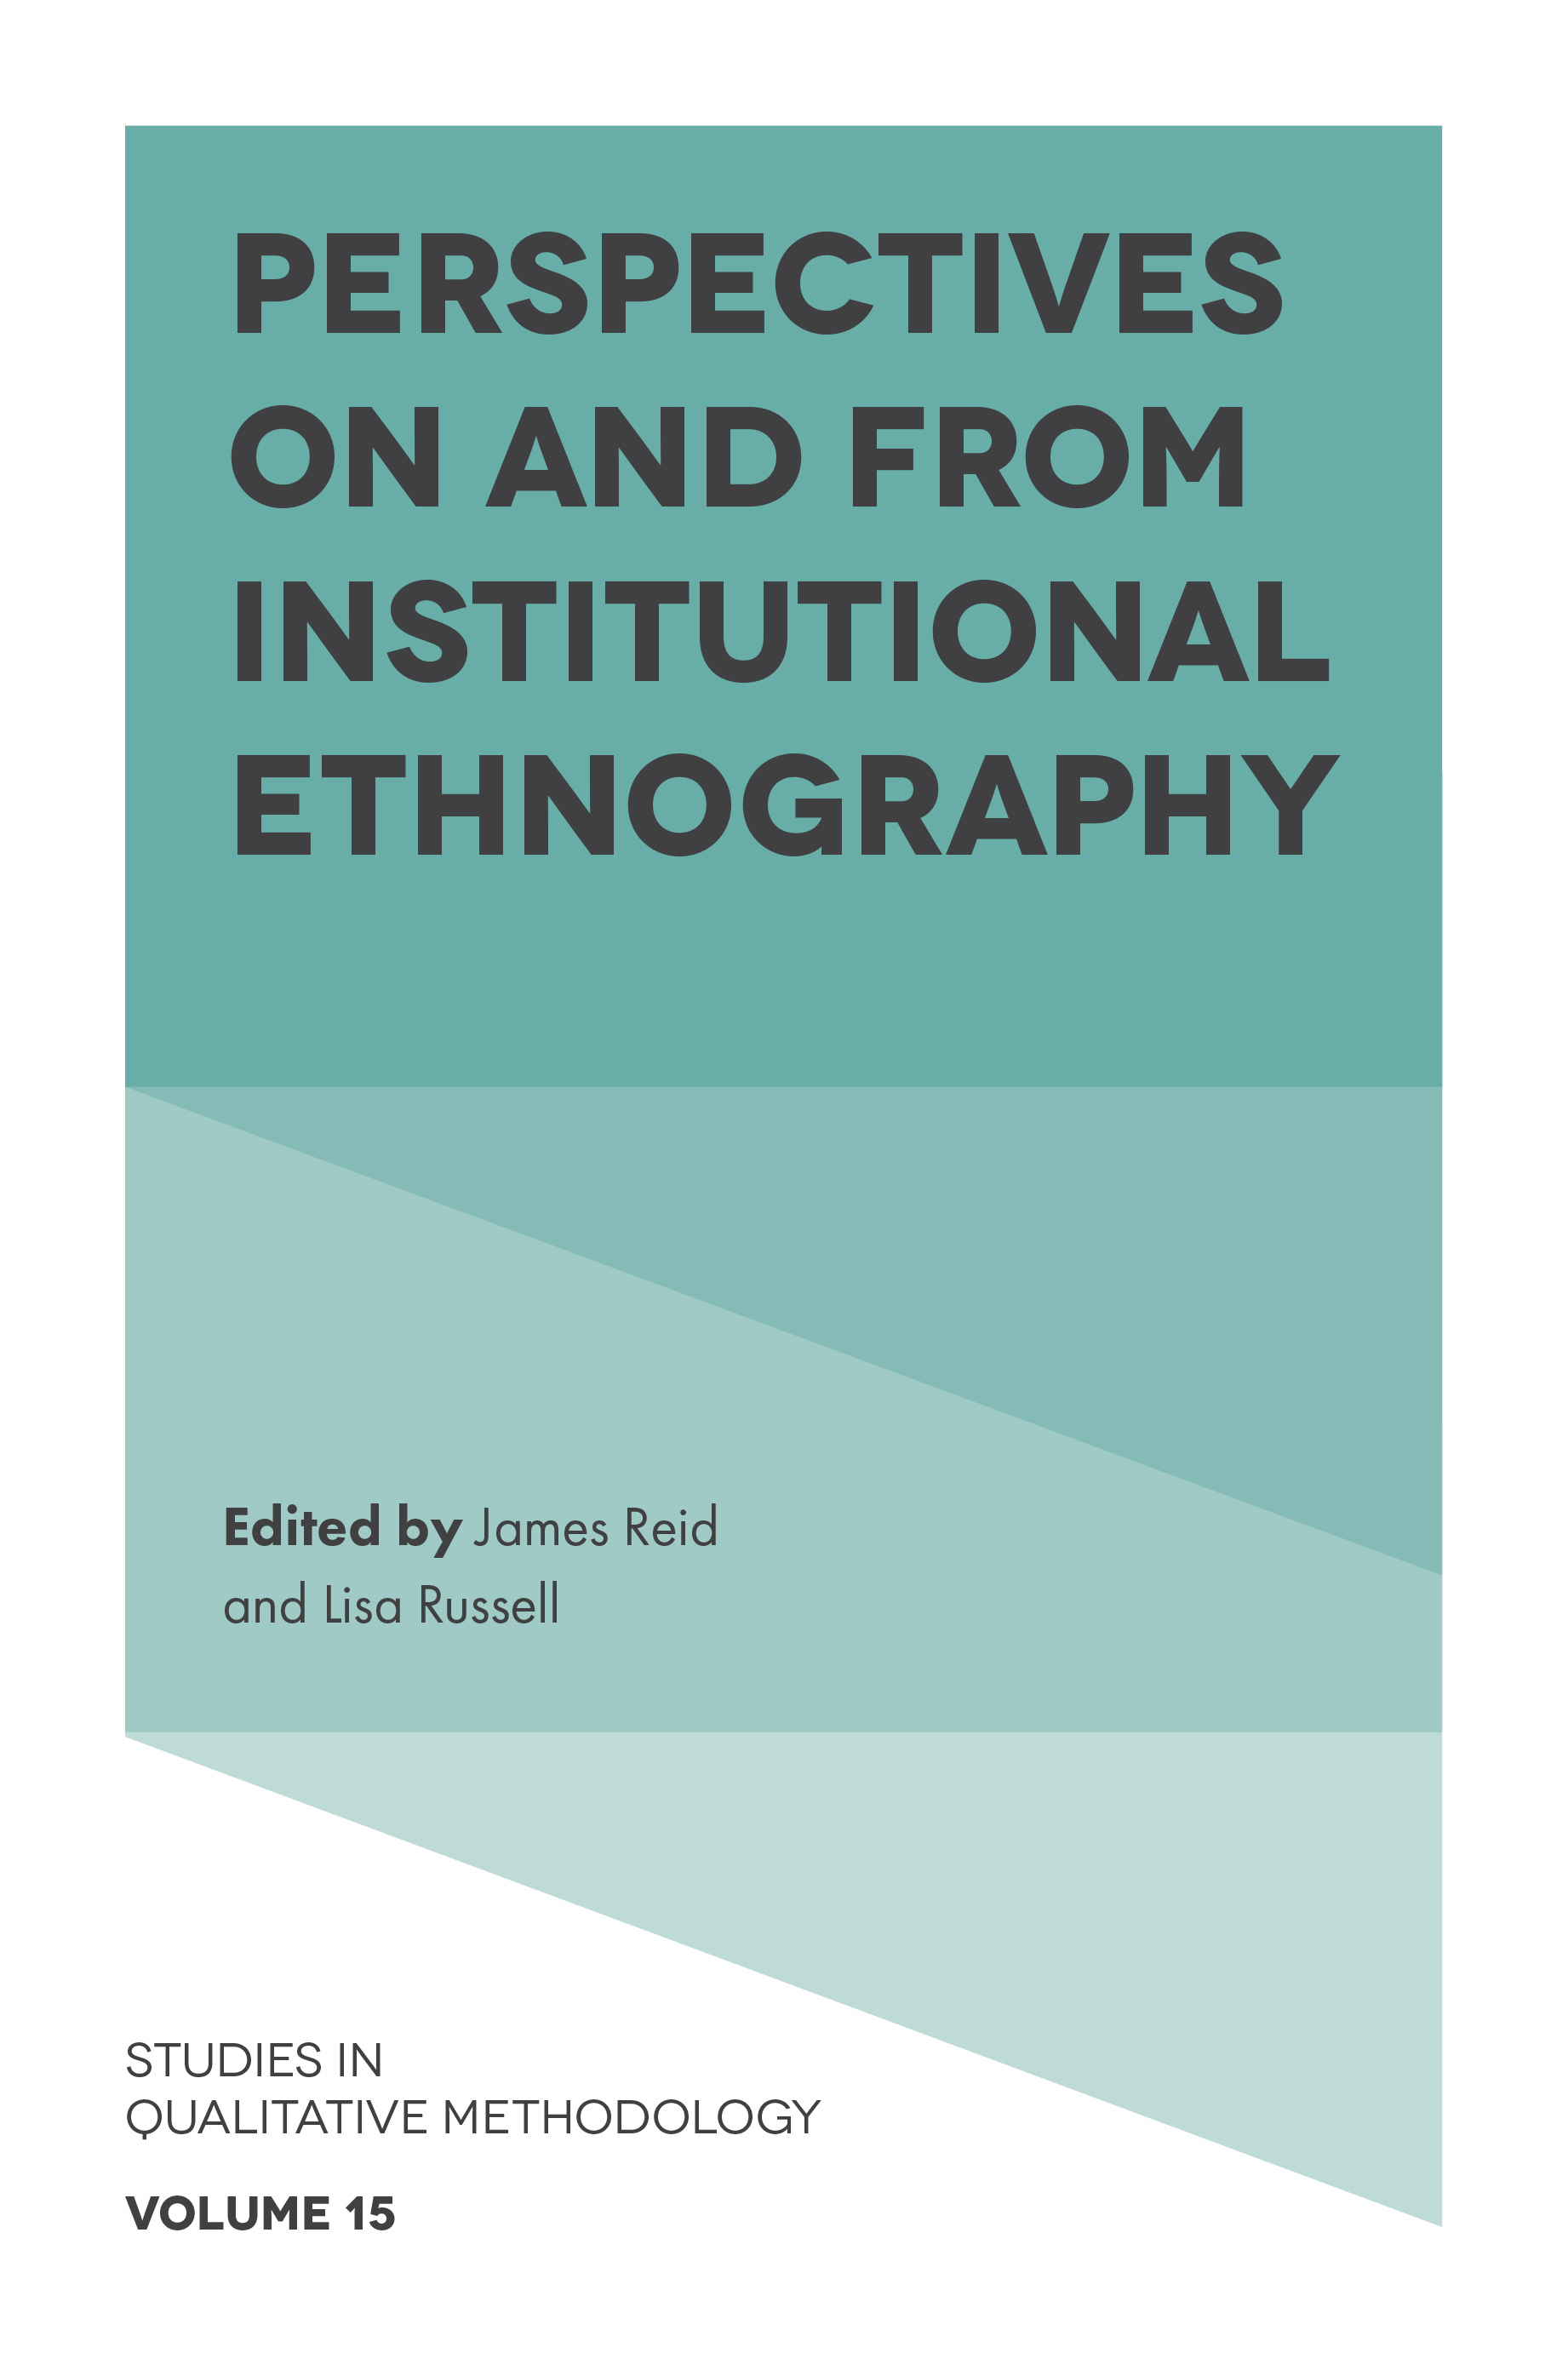 Book cover for Perspectives on and from Institutional Ethnography a book by Dr James  Reid, Dr Lisa  Russell